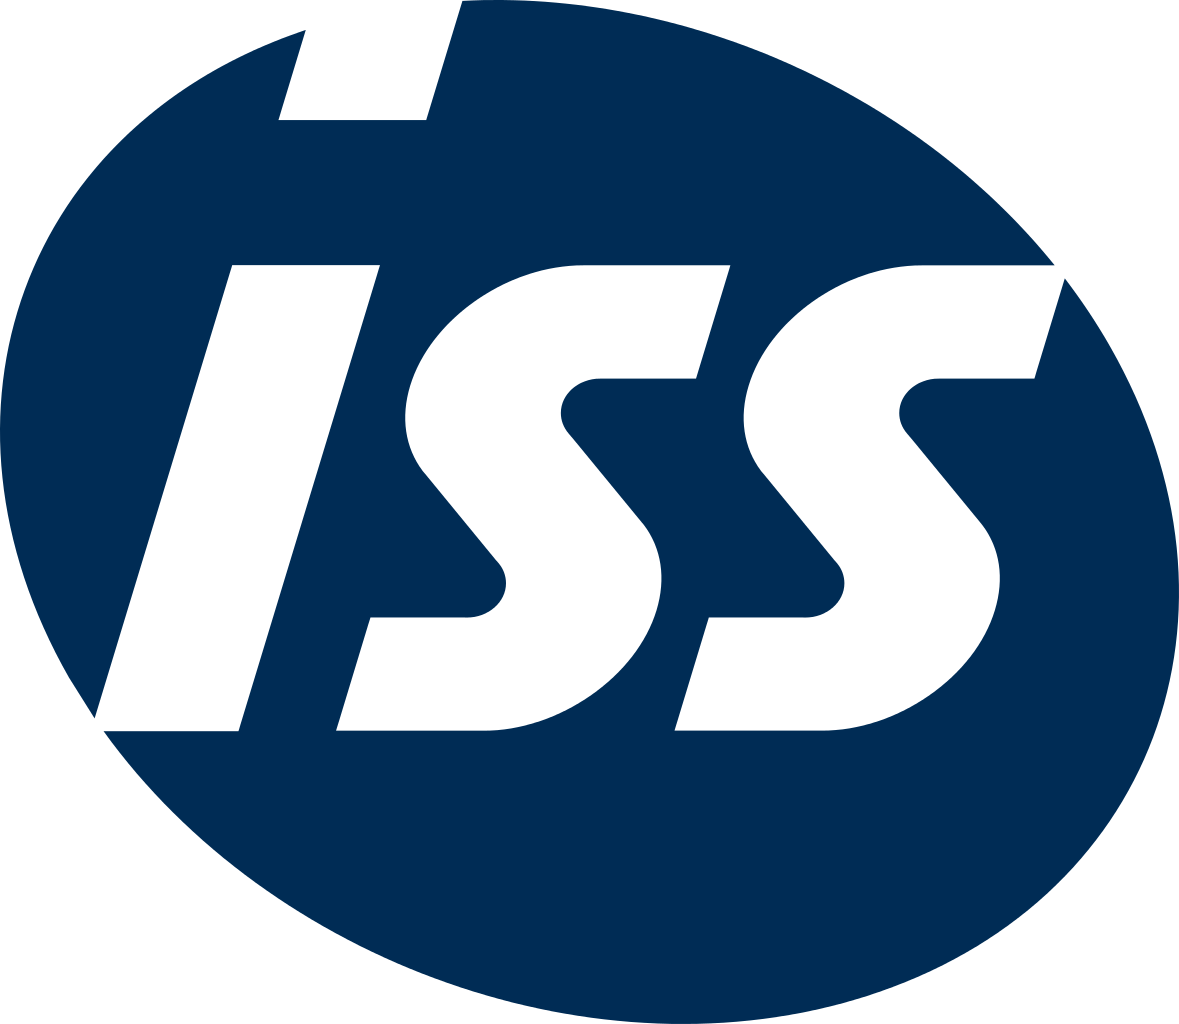 ISS-Logo1.png